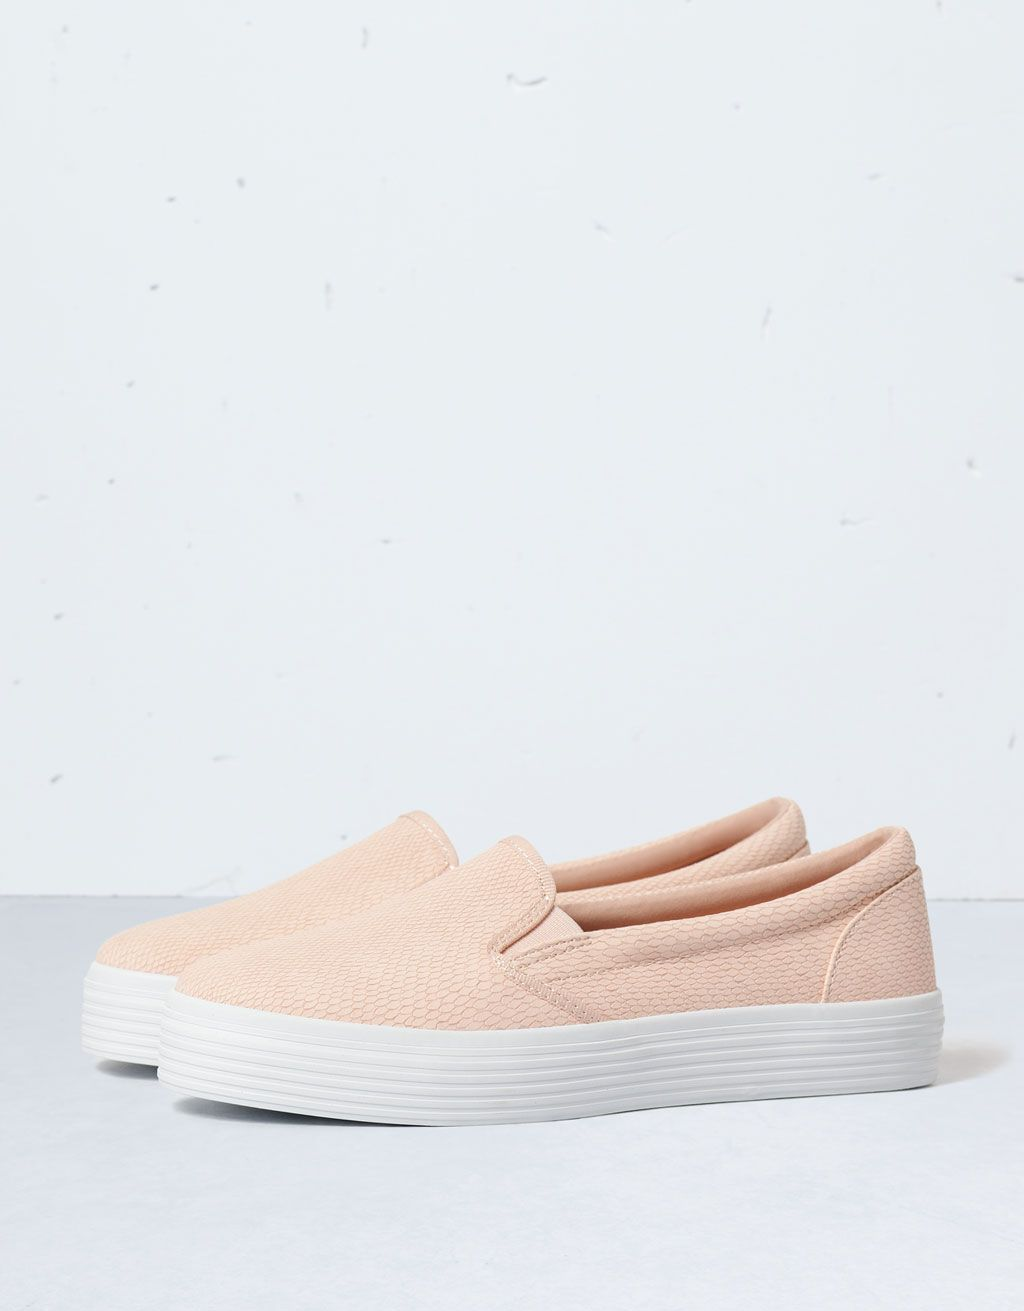 official photos 78adc 53346 Bershka slip-ons - Shoes - Bershka Serbia